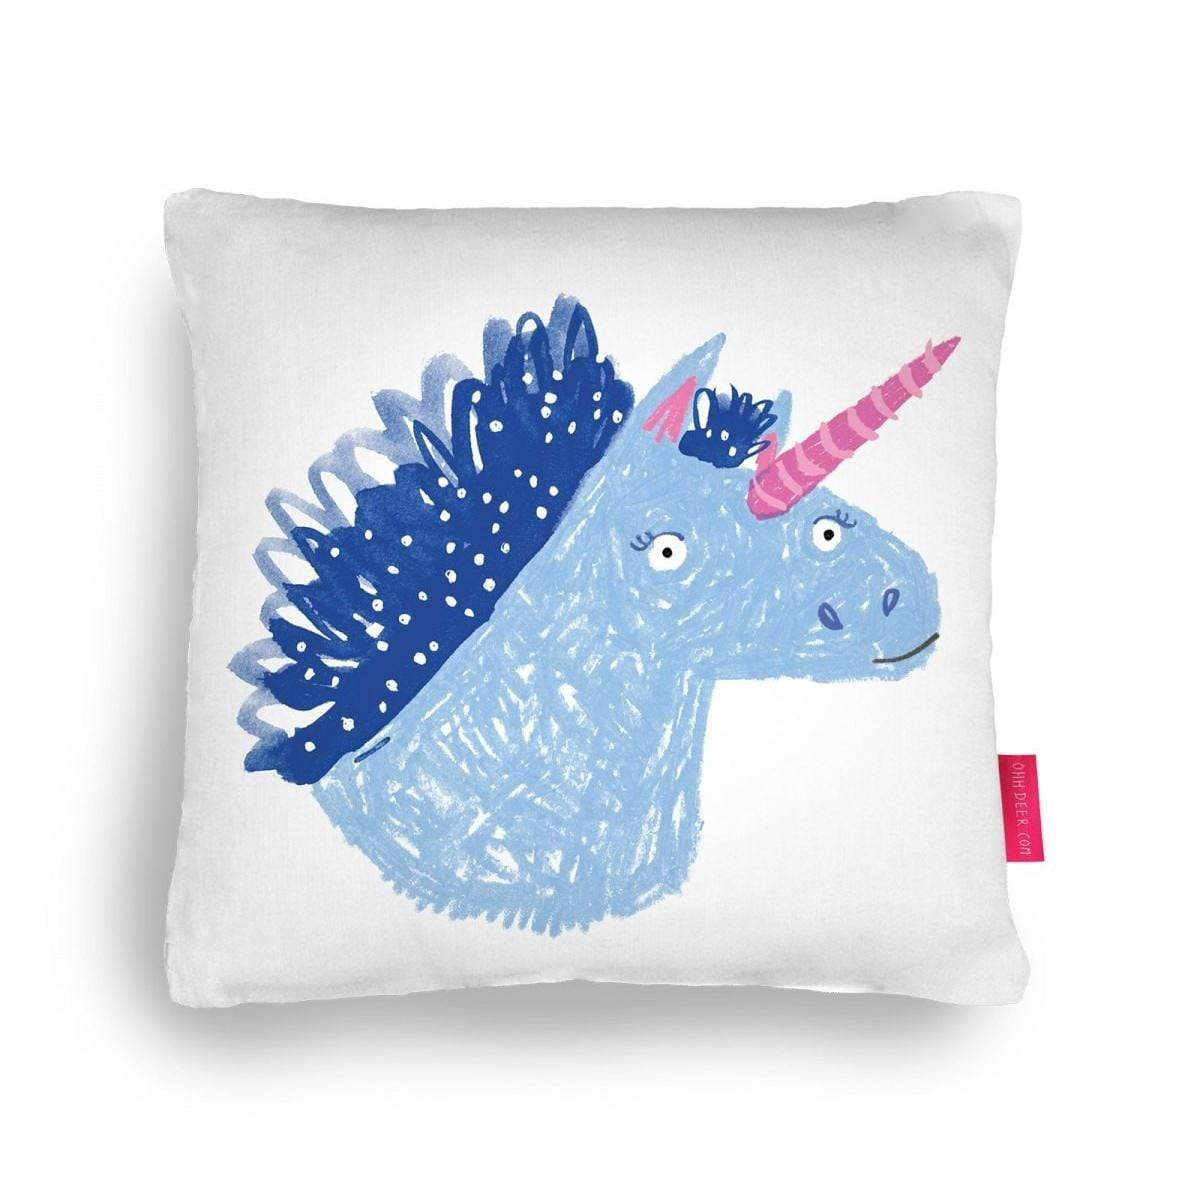 Unicorn Cushion Decorative Pillow - 18 x 18 with Insert